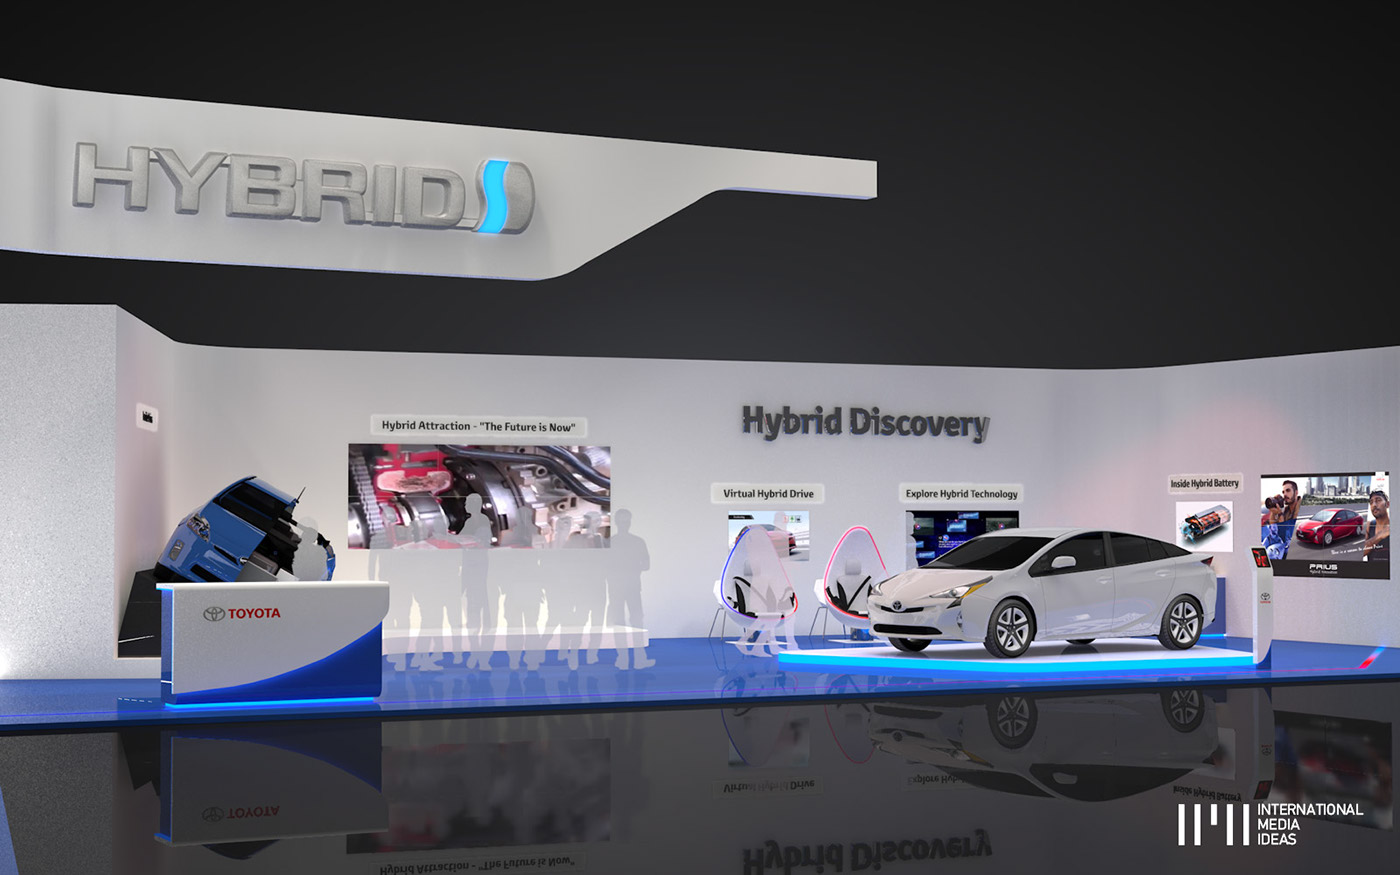 Exhibition Stand Futuristic : Toyota hybrid exhibition stand on pantone canvas gallery